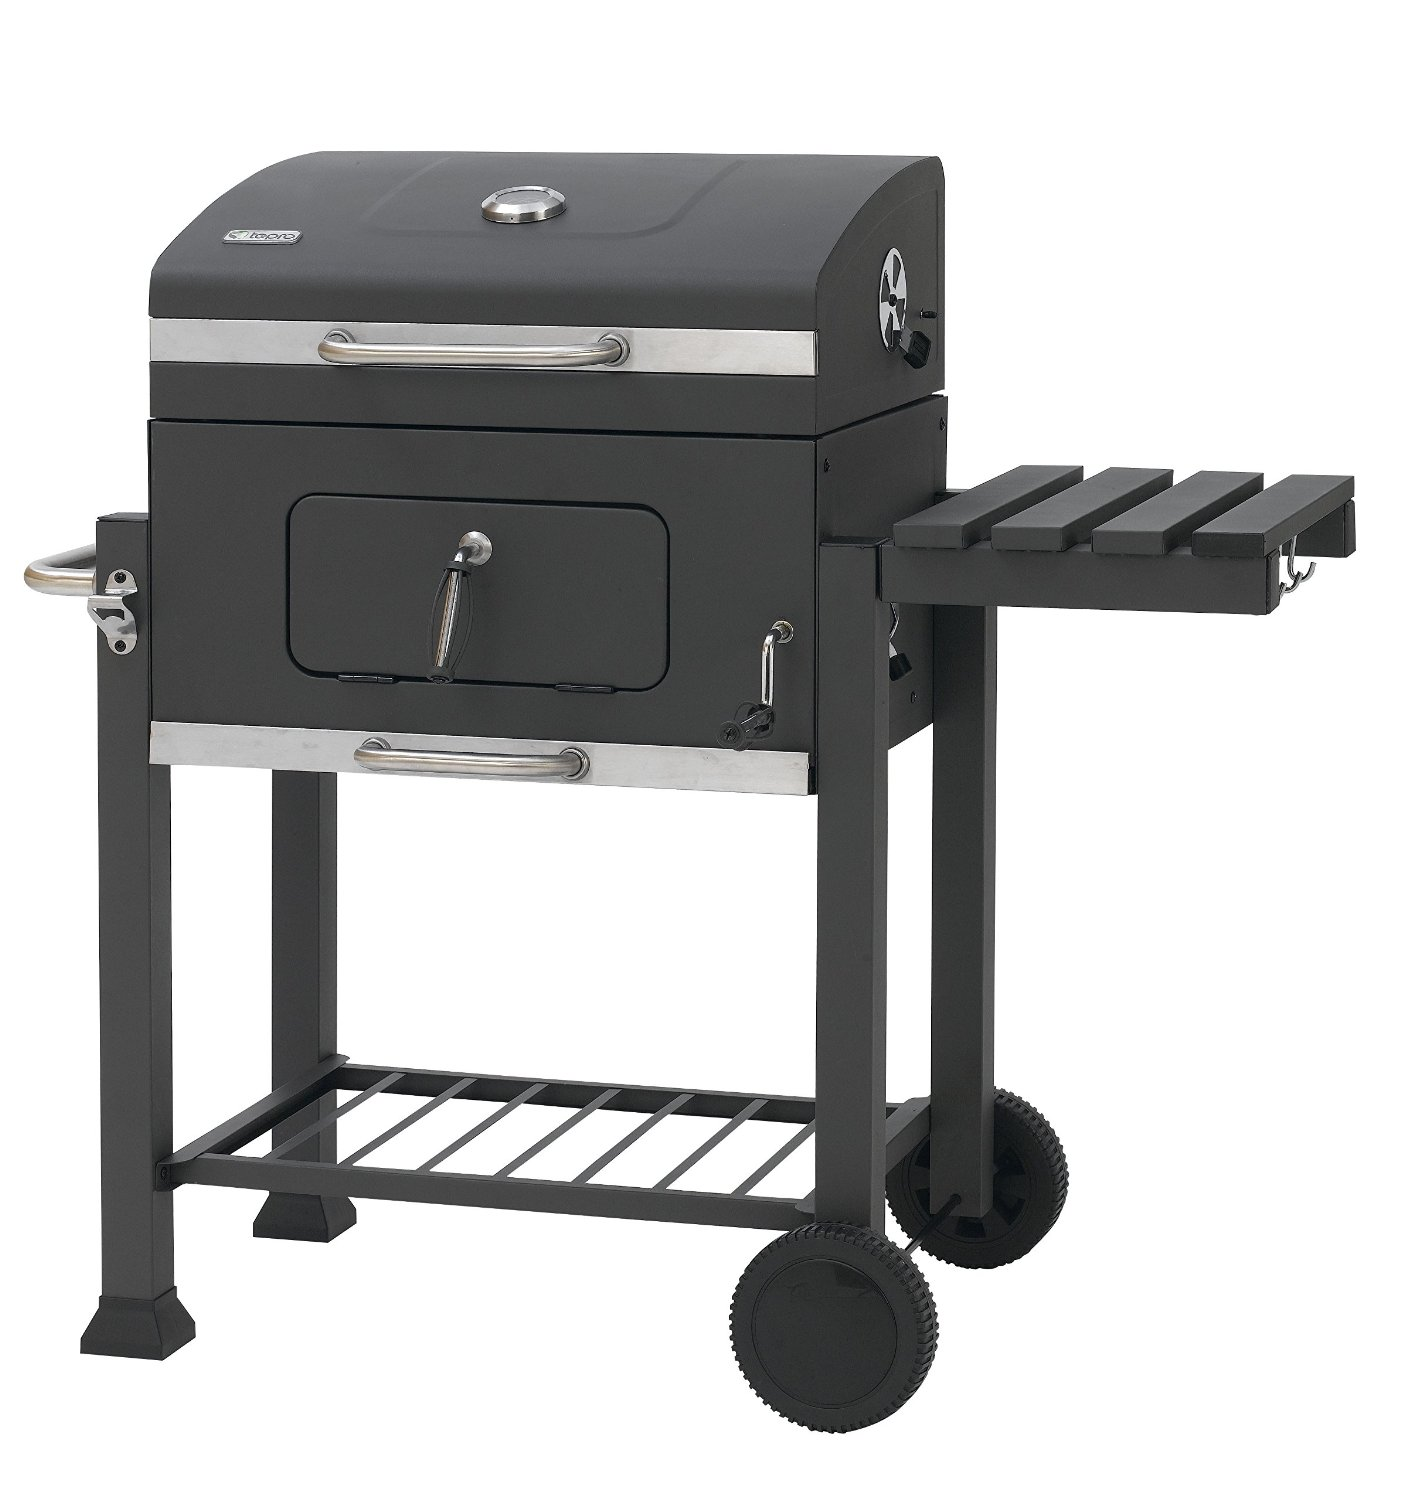 High Quality Holzkohle Grill